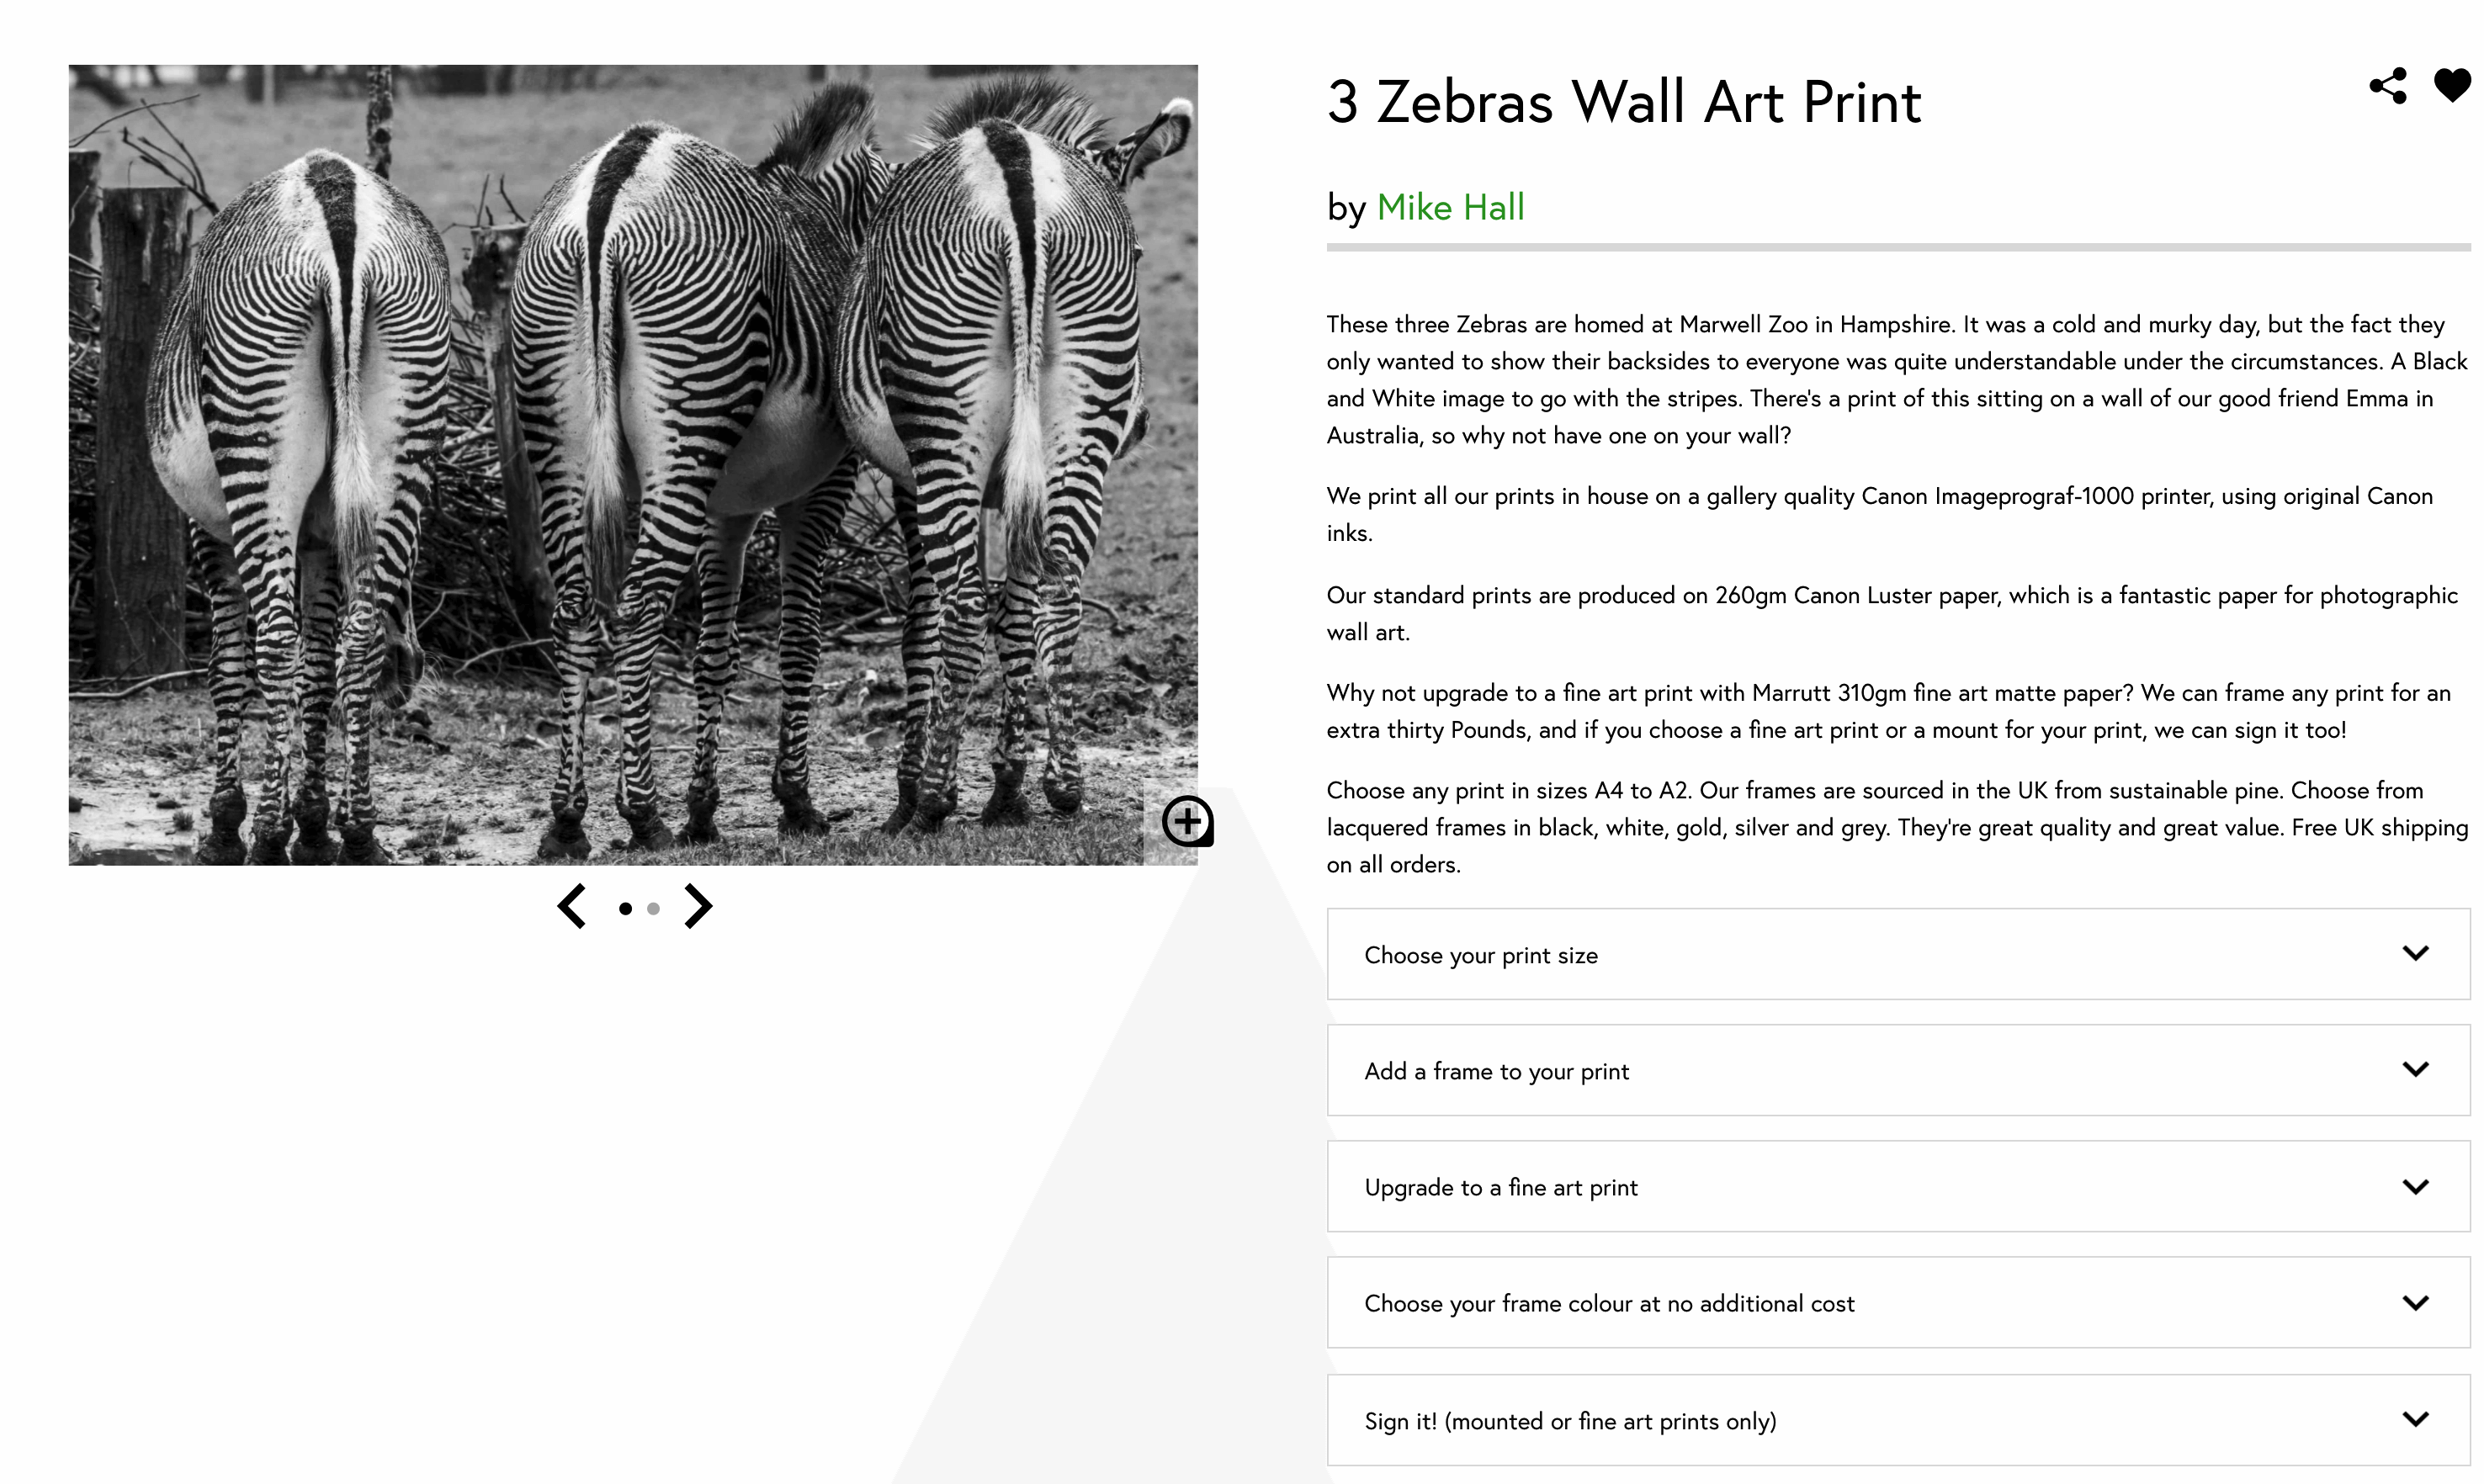 How to choose your wall art print size